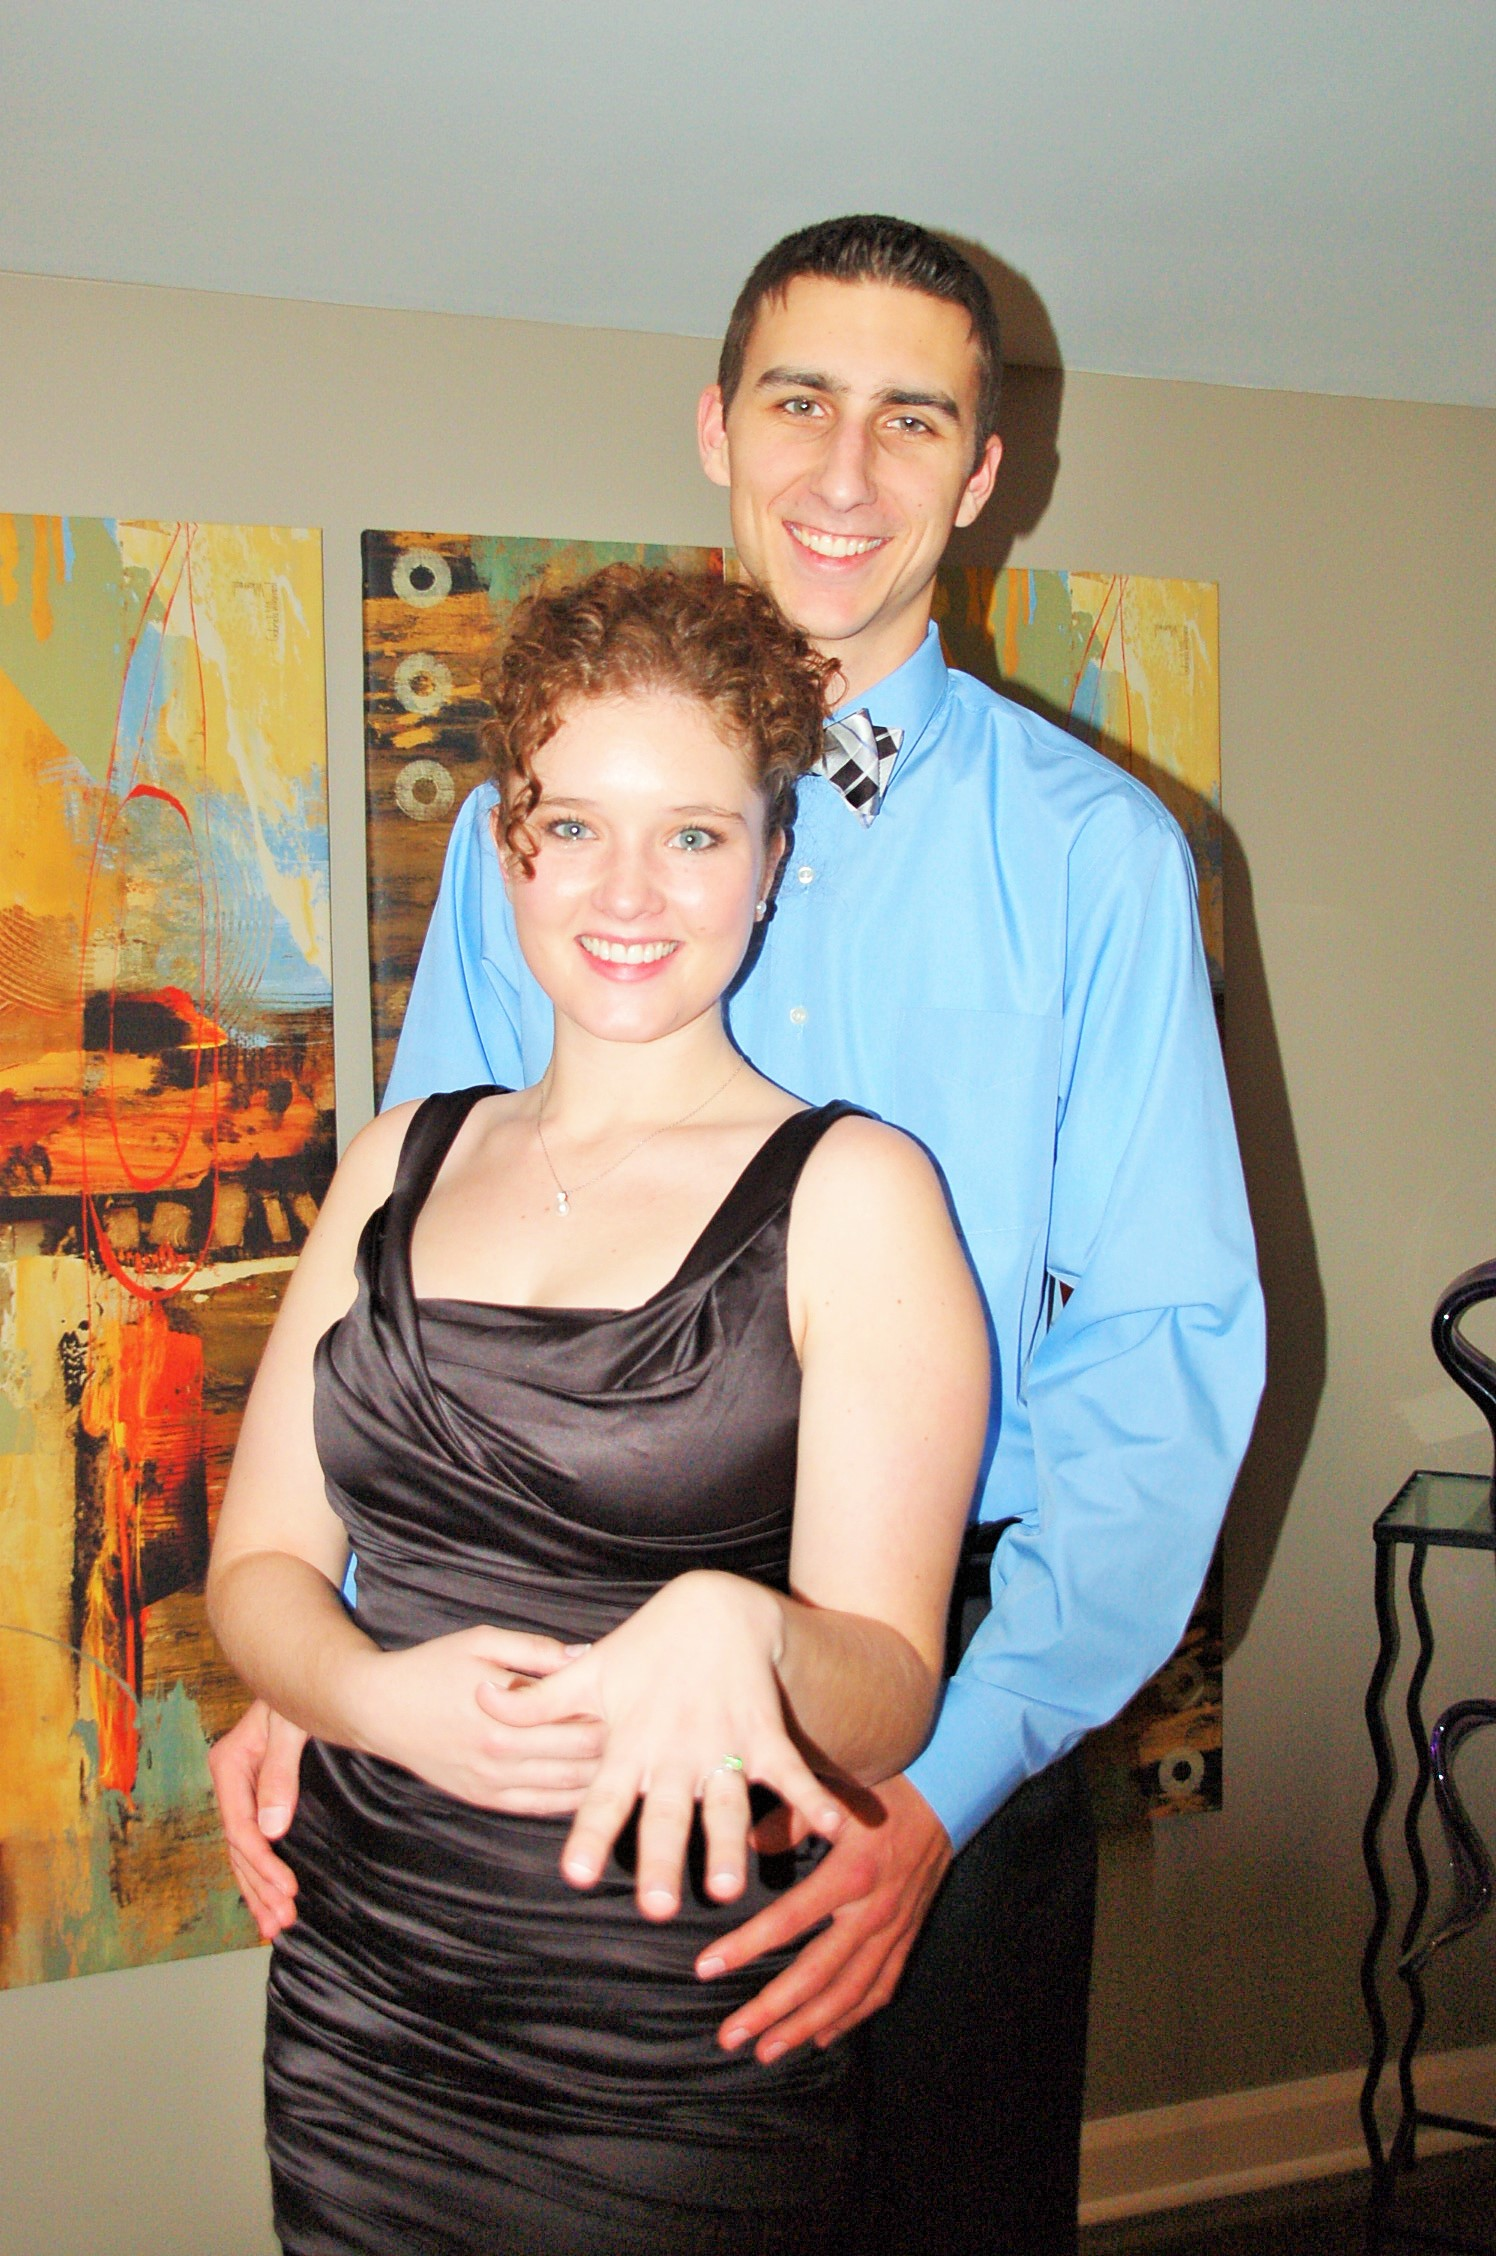 Image 1 of Erika and Greg's Romantic All-Day Proposal